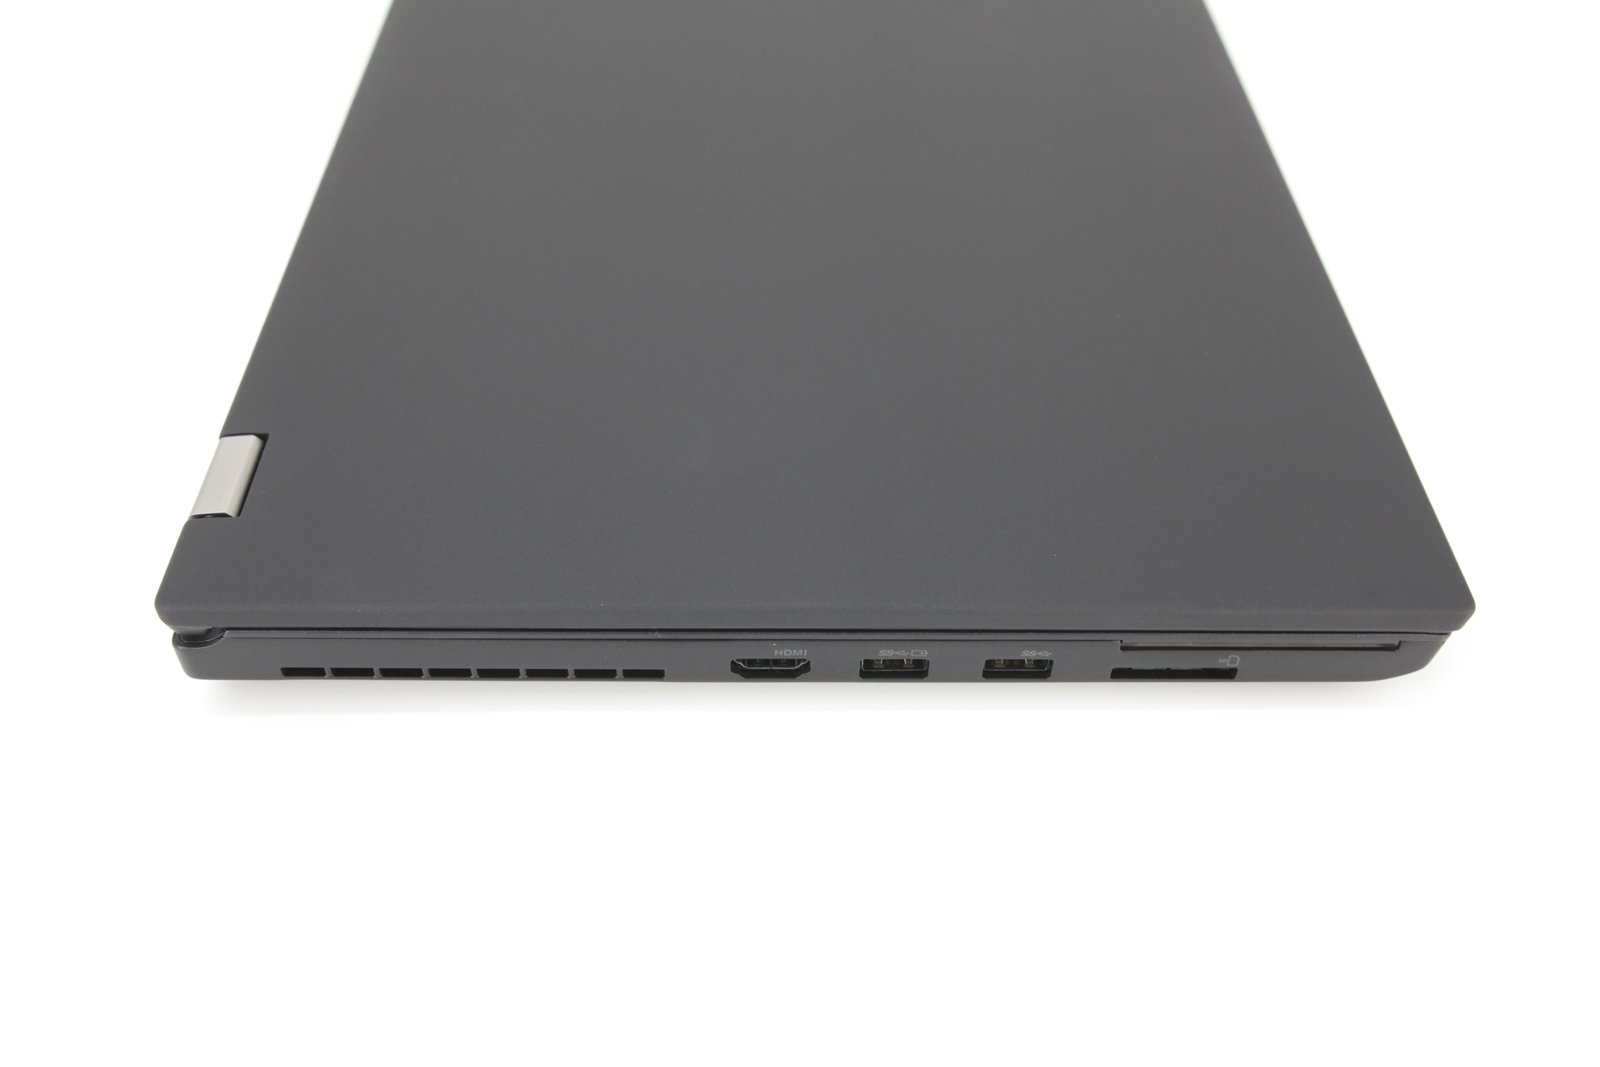 Lenovo ThinkPad P53 Laptop: Core i7-9750H, 1TB SSD, 16GB, Quadro T2000, Warranty - CruiseTech